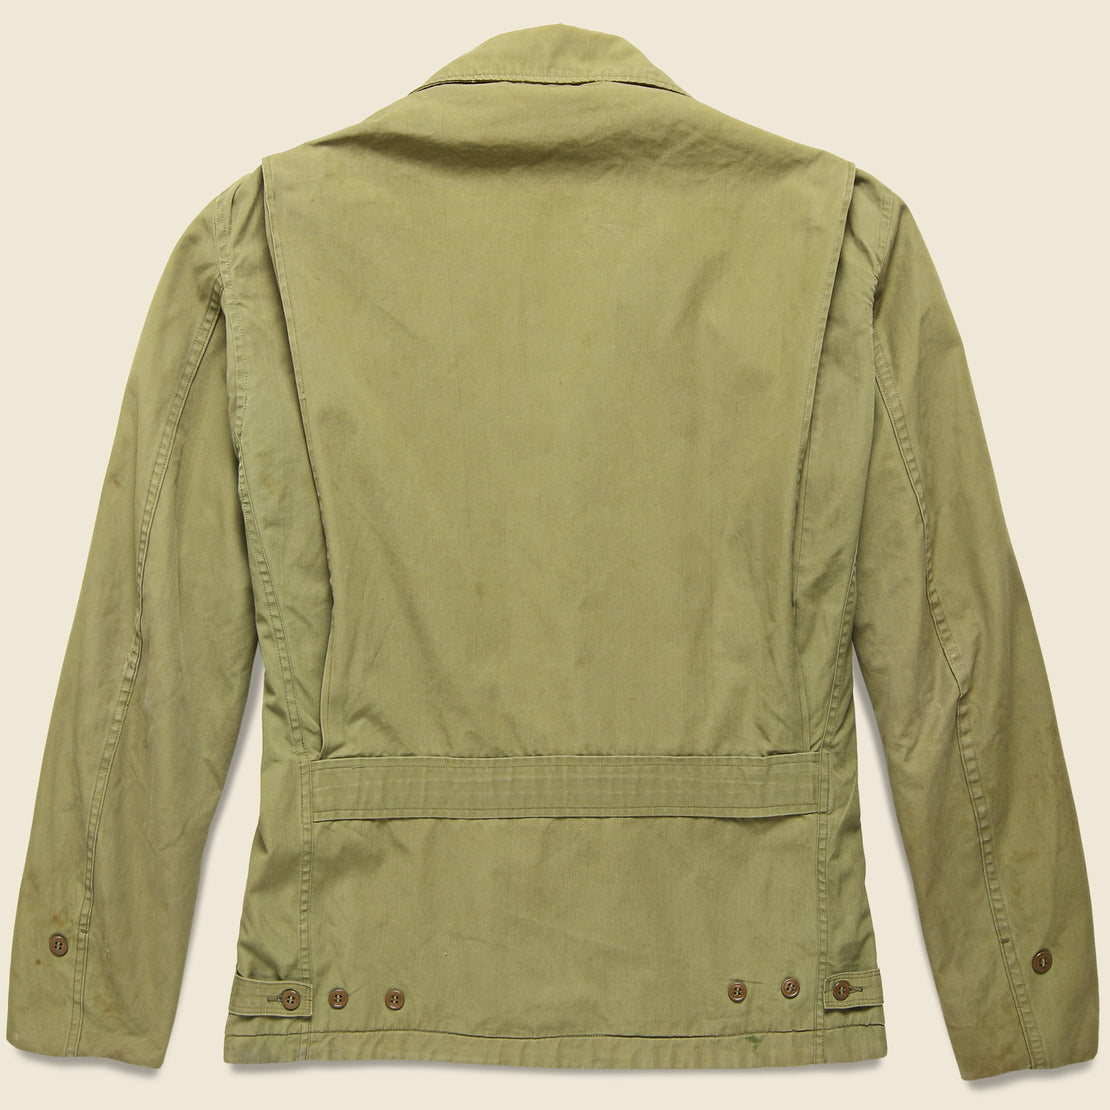 WWII Air Force Utility Jacket - Military Green